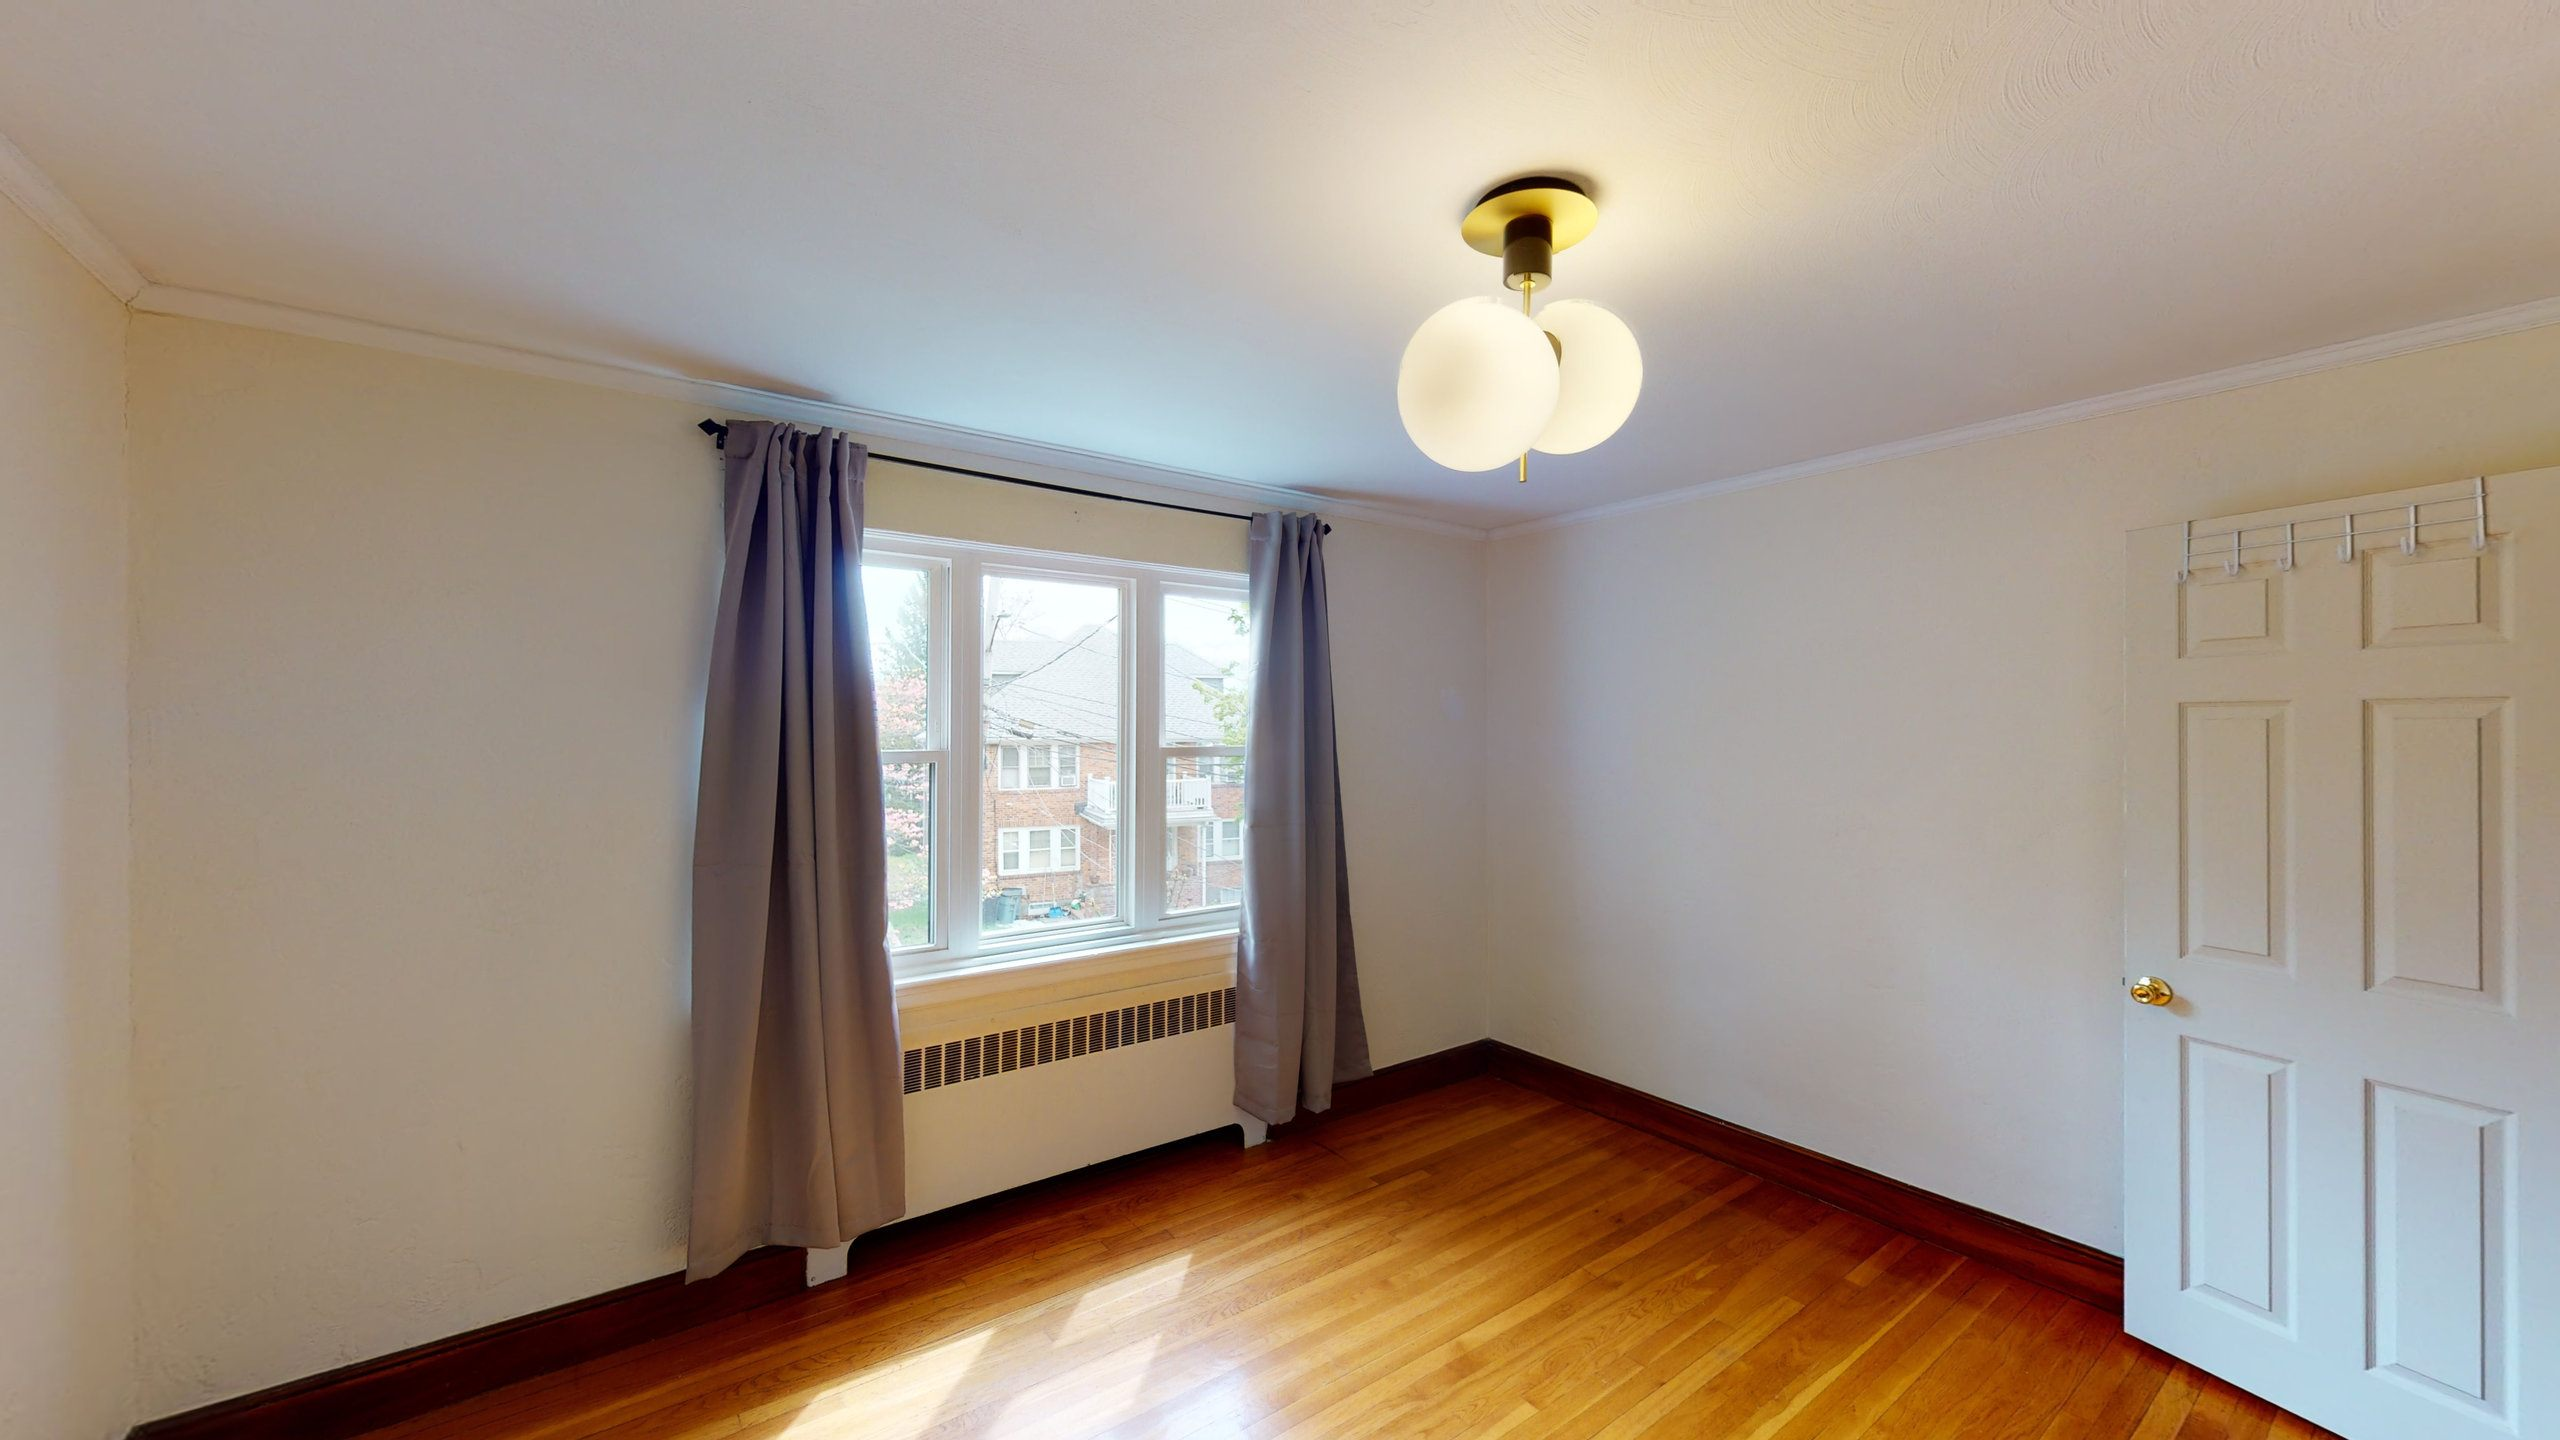 Photo of Full Room 1A (can be furnished or unfurnished) room June Homes